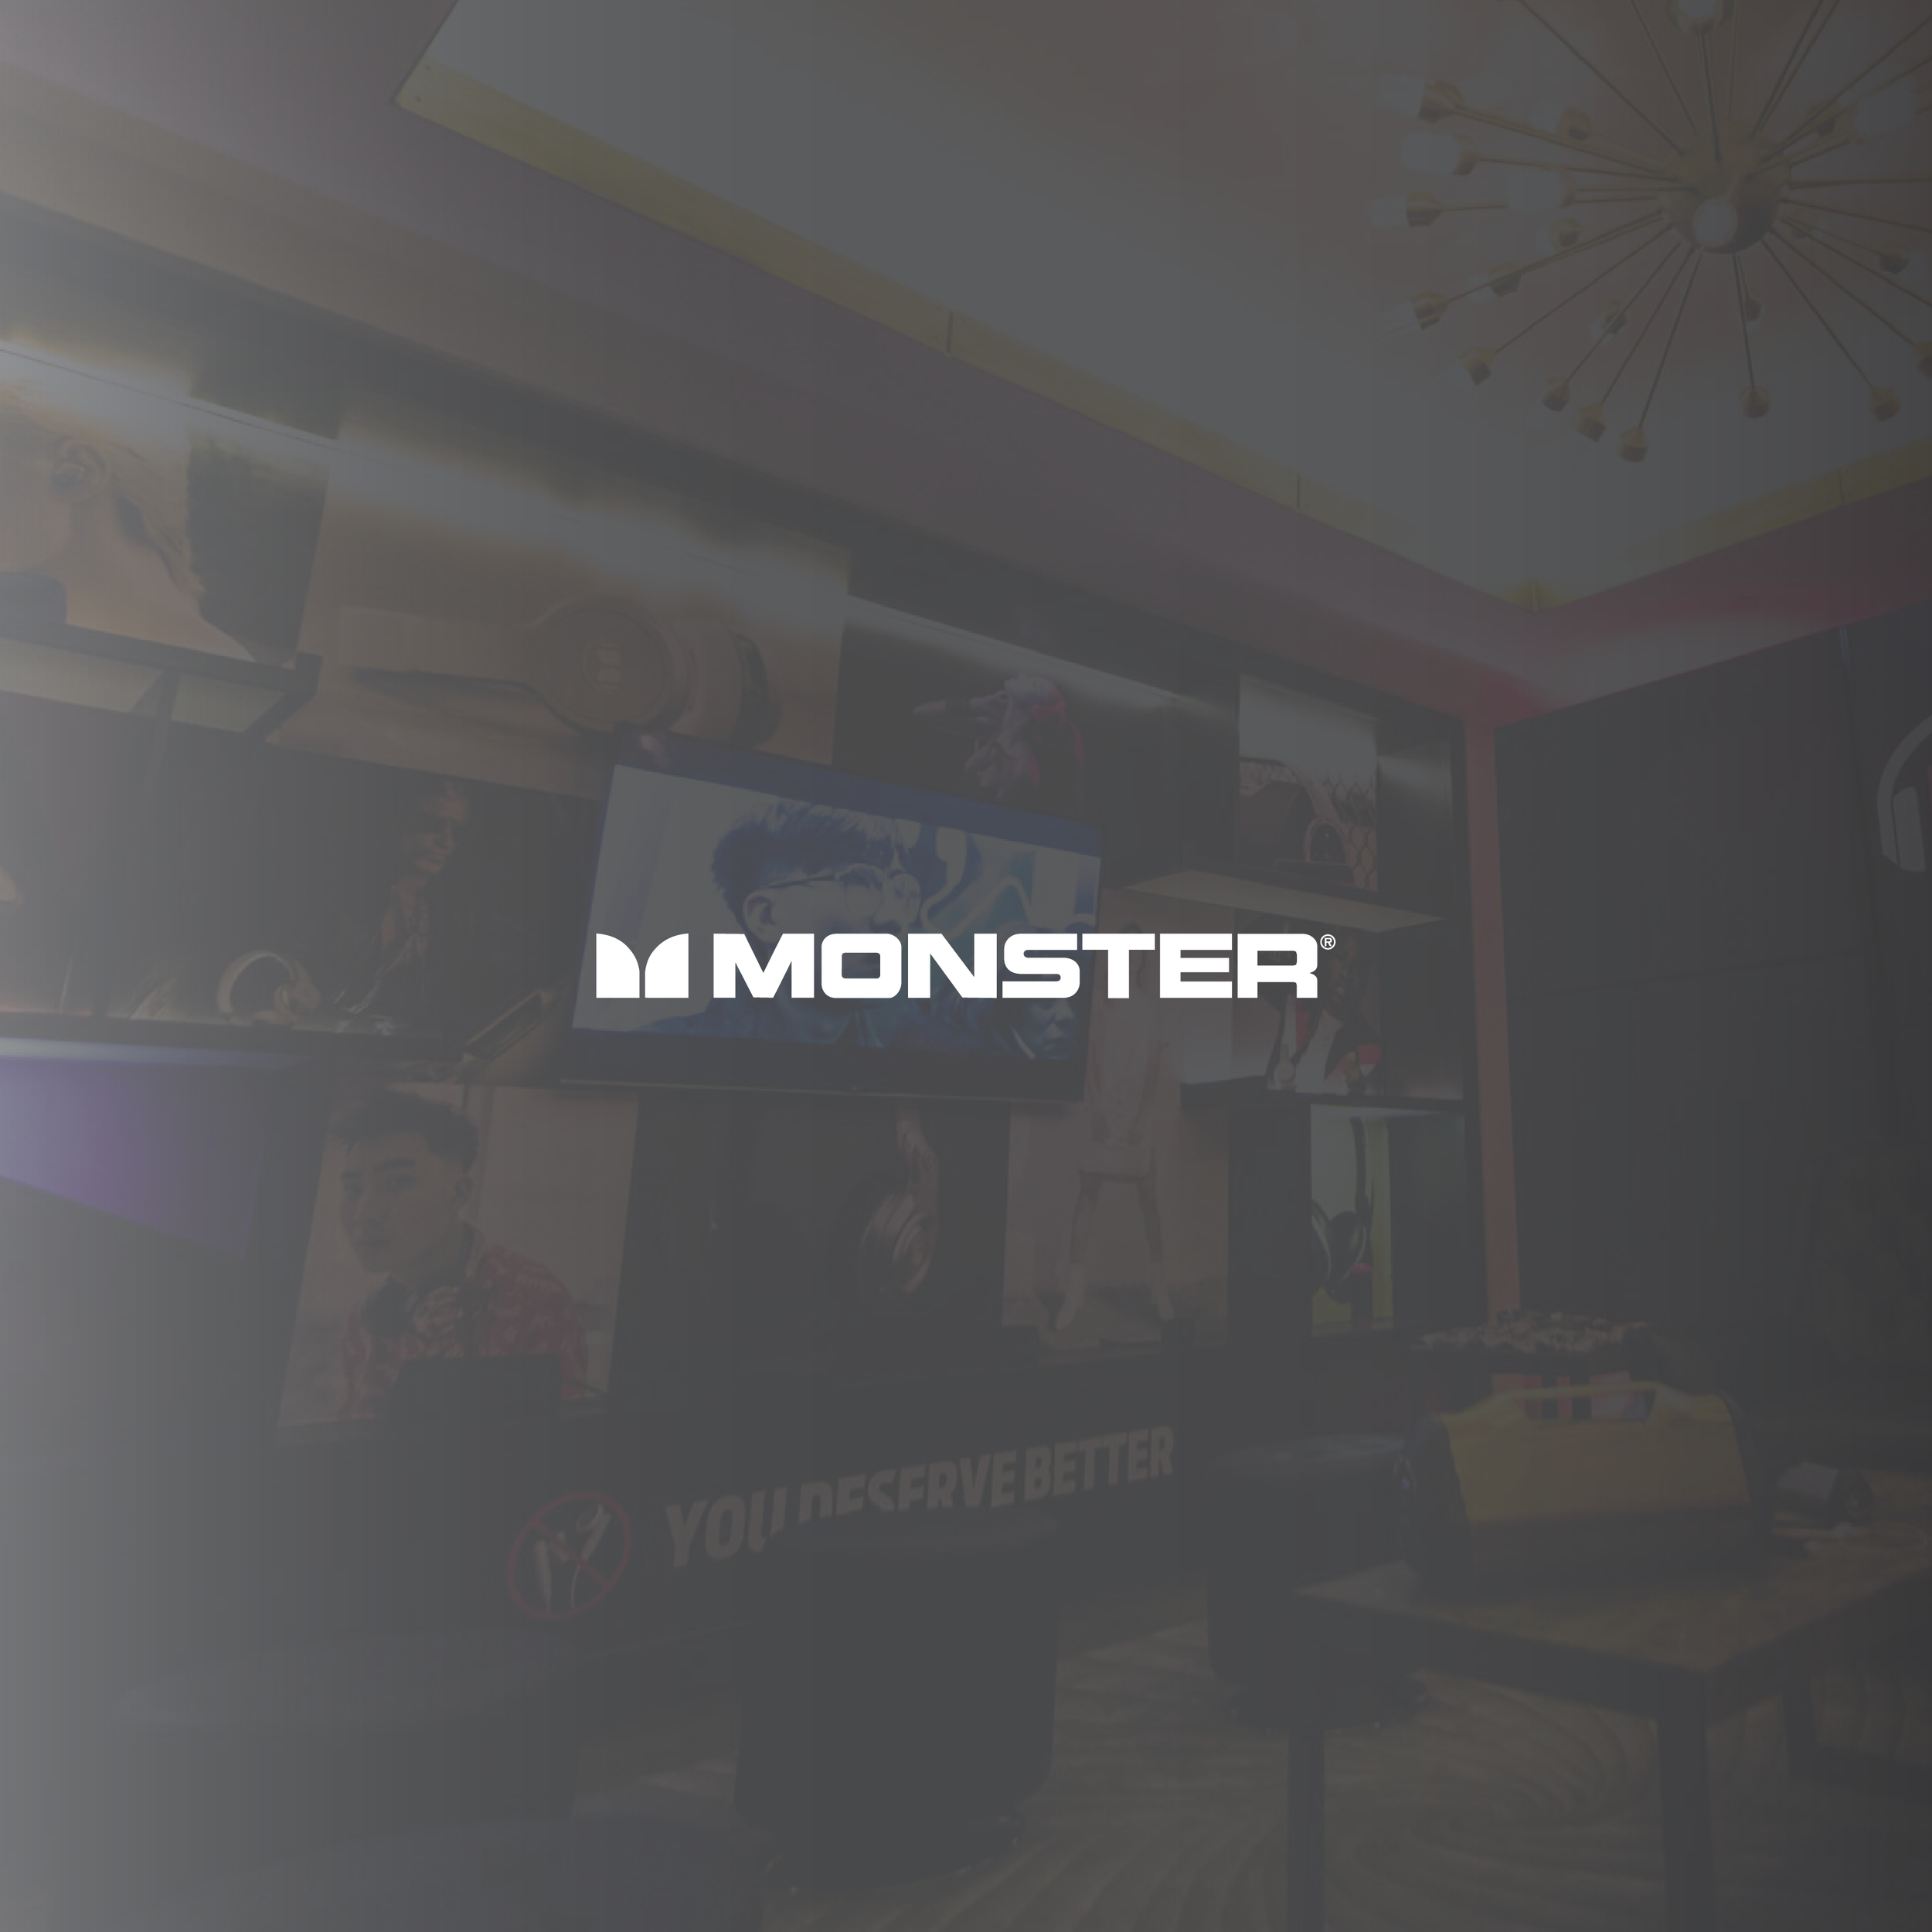 Monster x All Star Weekend Experiential Marketing Event